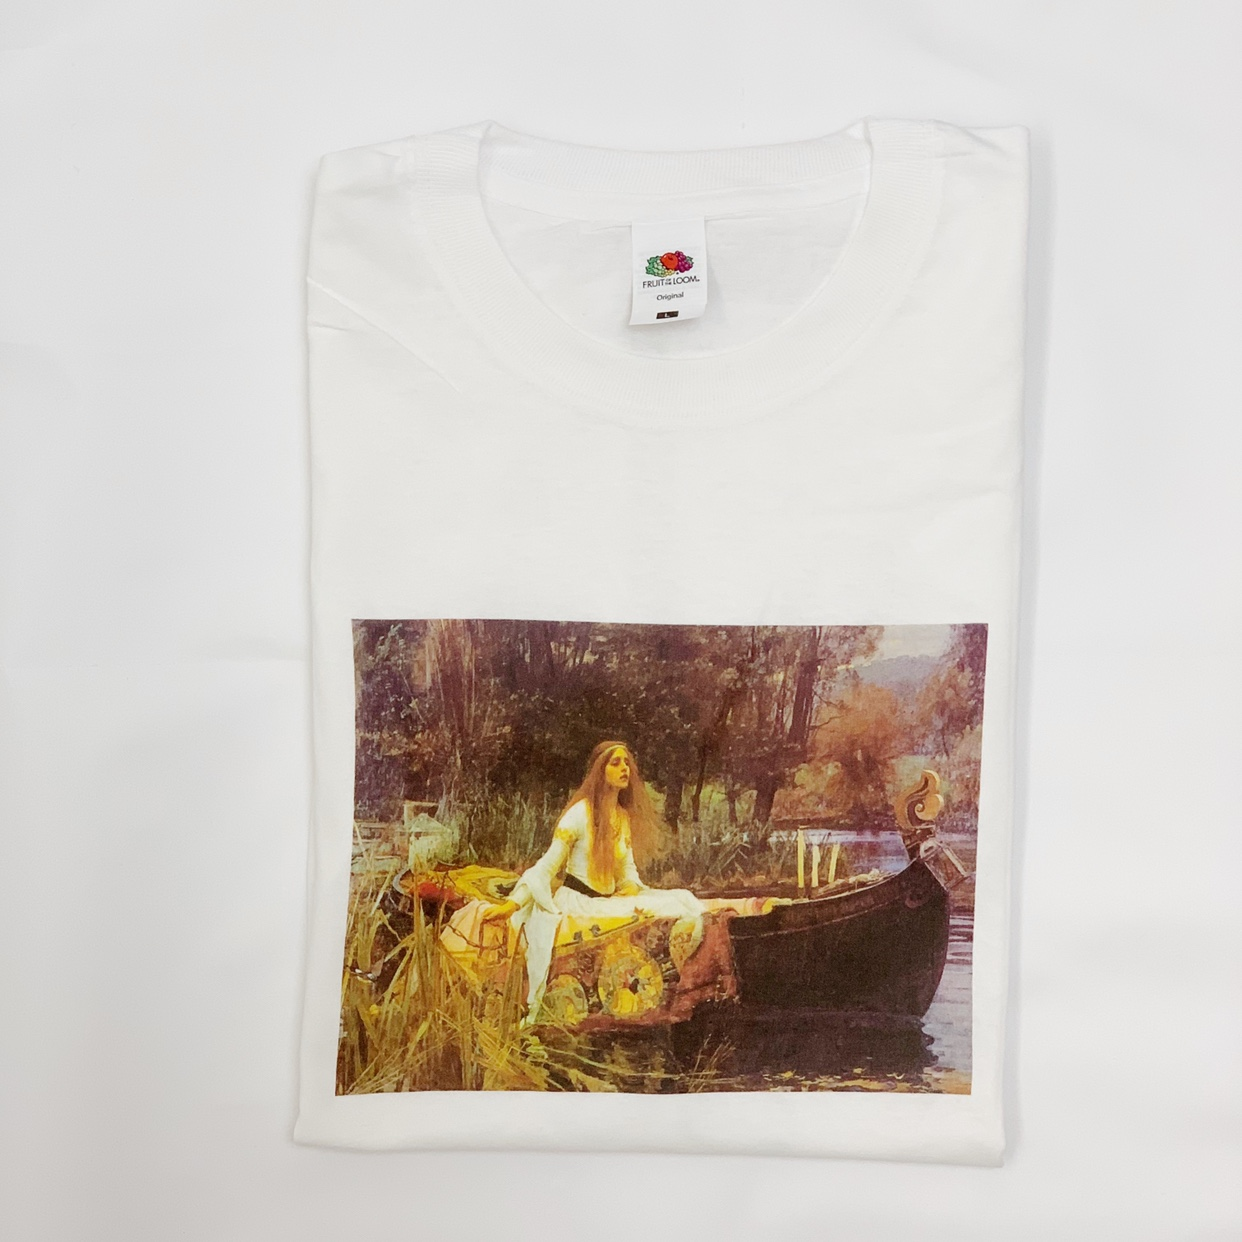 aafe44327 AESTHETIC VINTAGE ART WHITE T-SHIRT just select your... - Depop